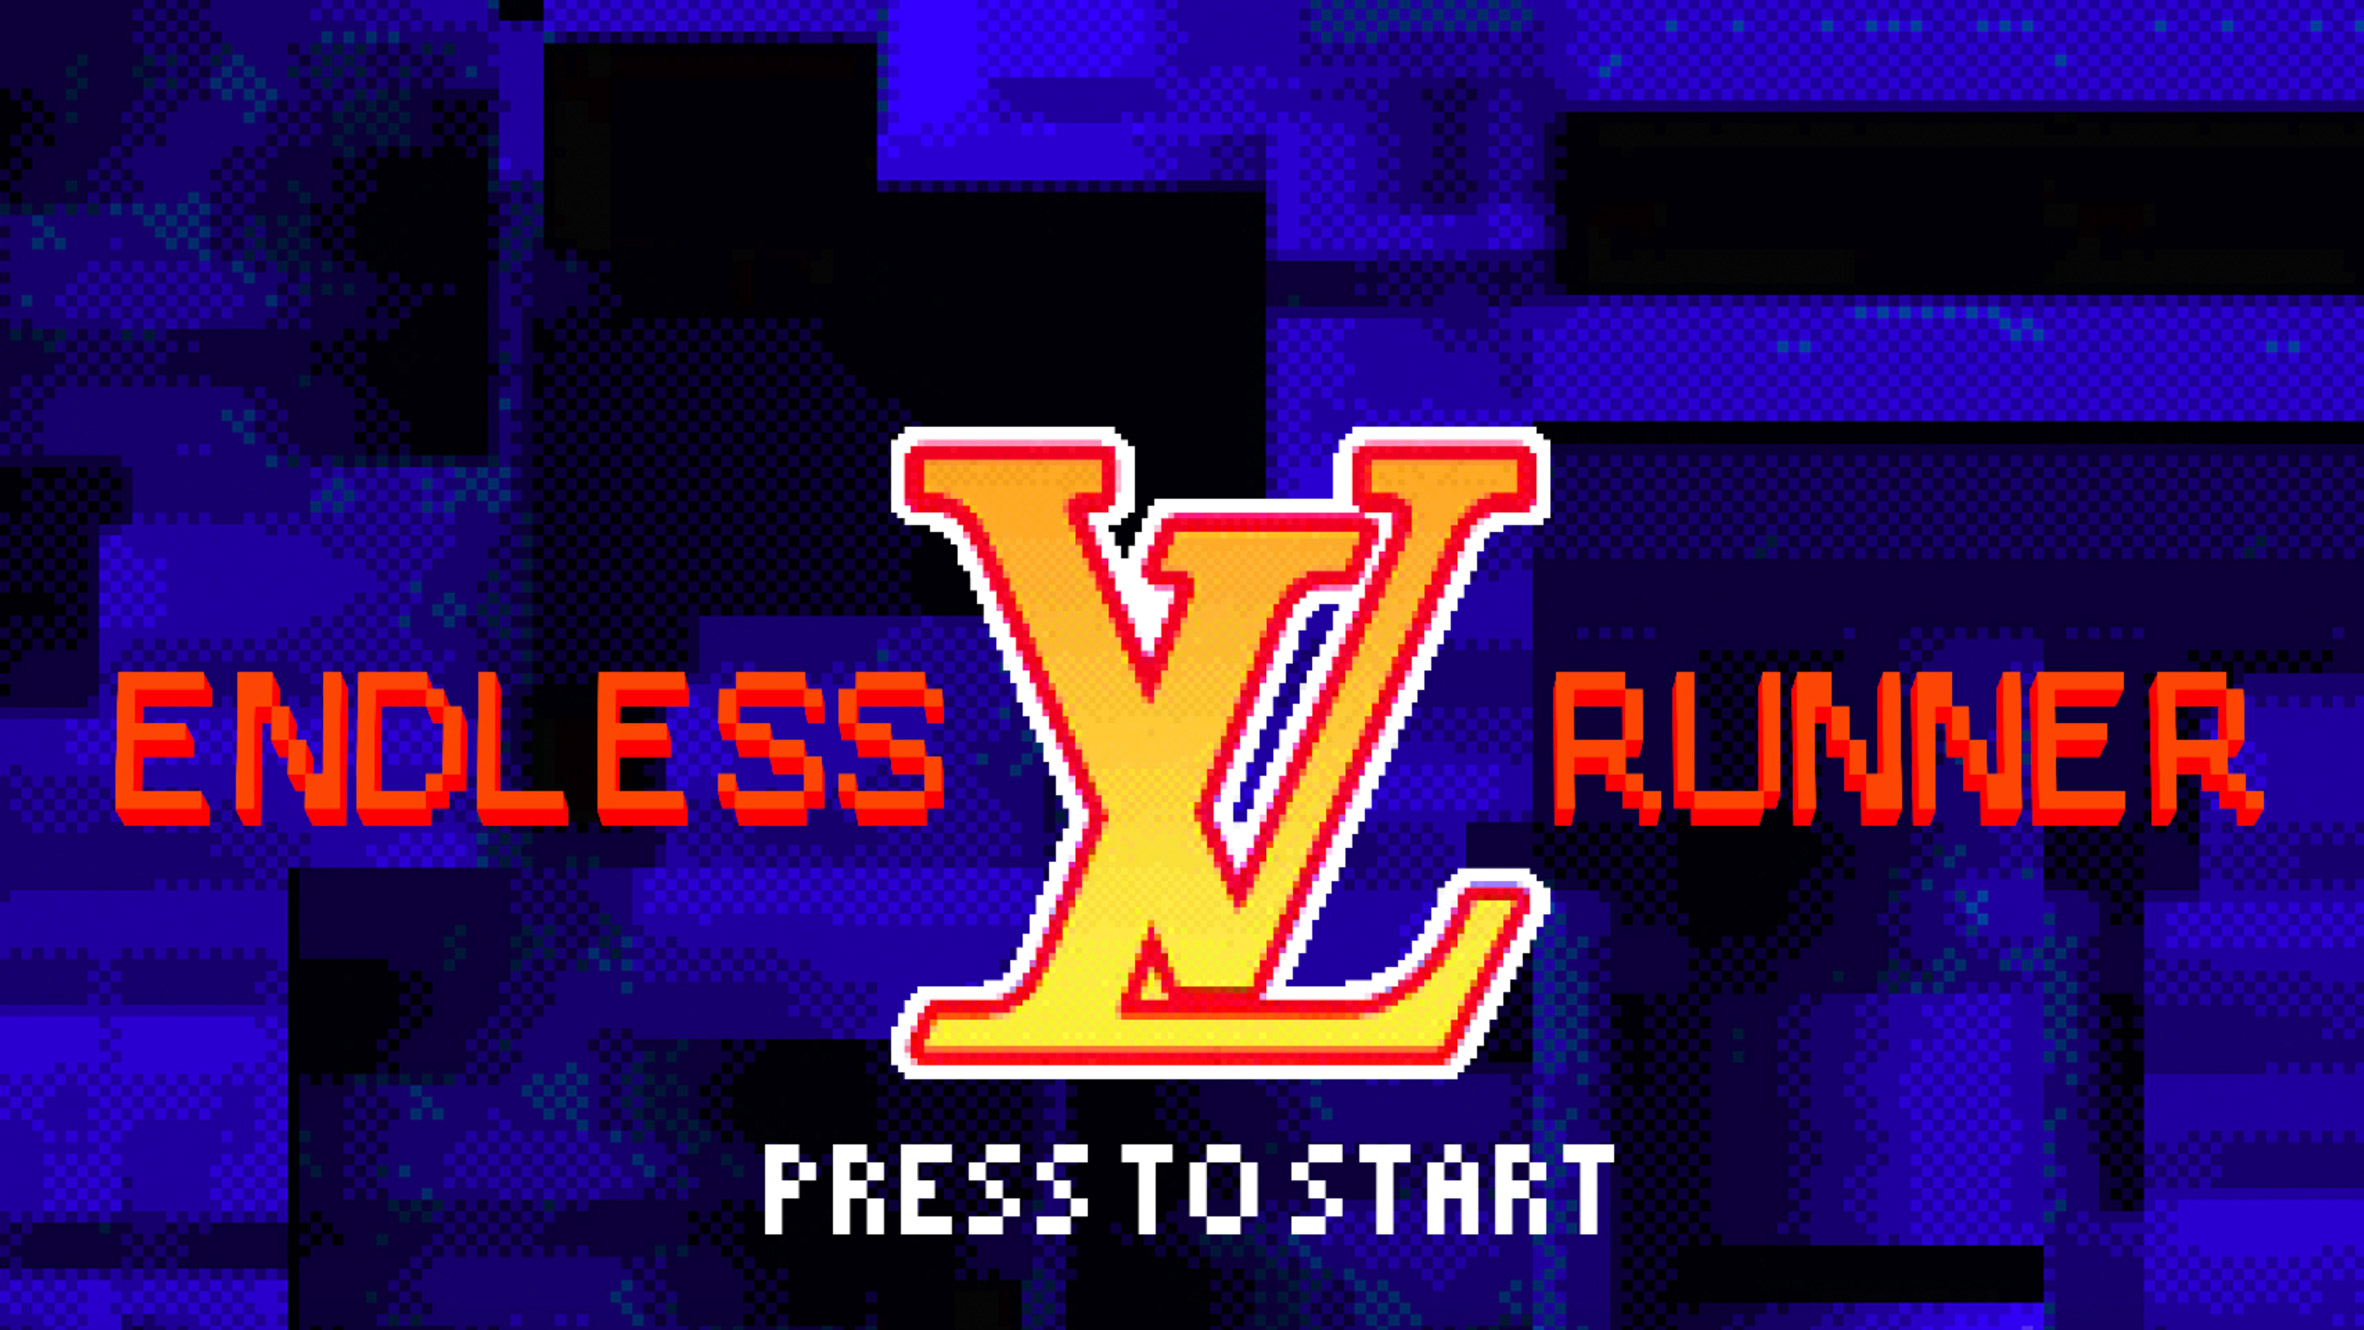 Explore New York in Louis Vuitton's Endless Runner video game